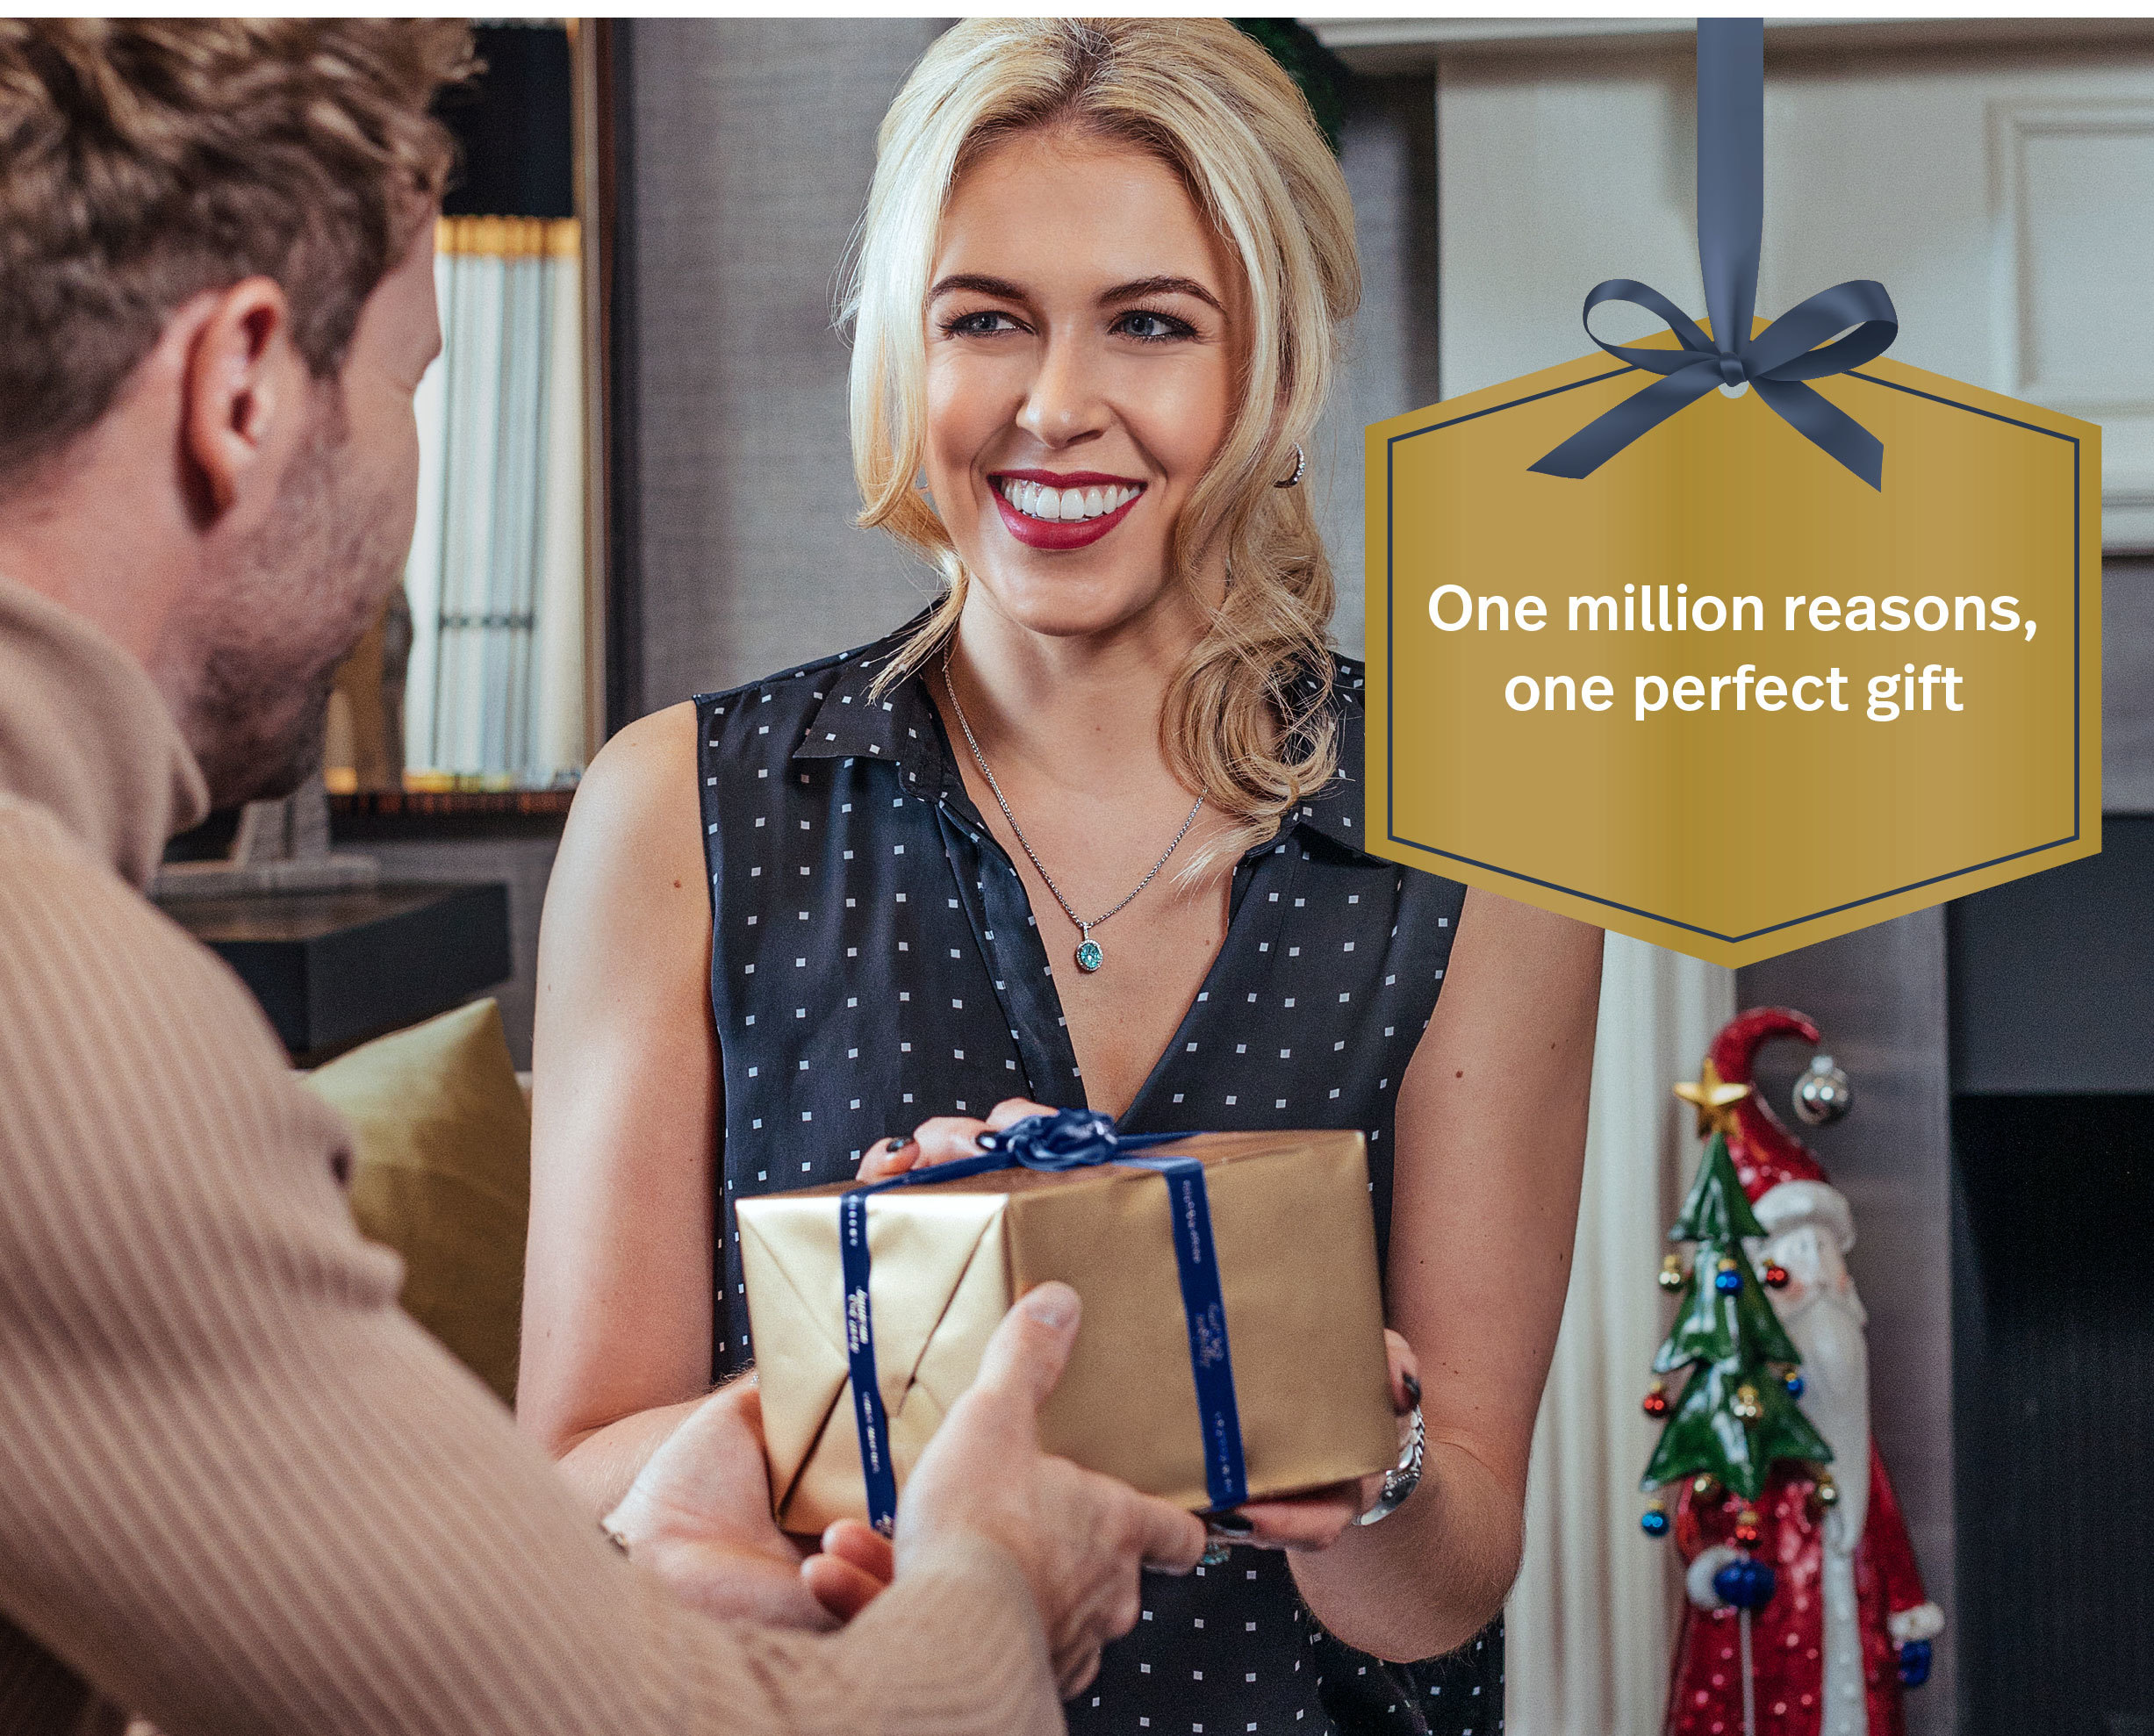 Ultimate Christmas 'Gift Guide for Her' with Jamieson & Carry and Energy Voice